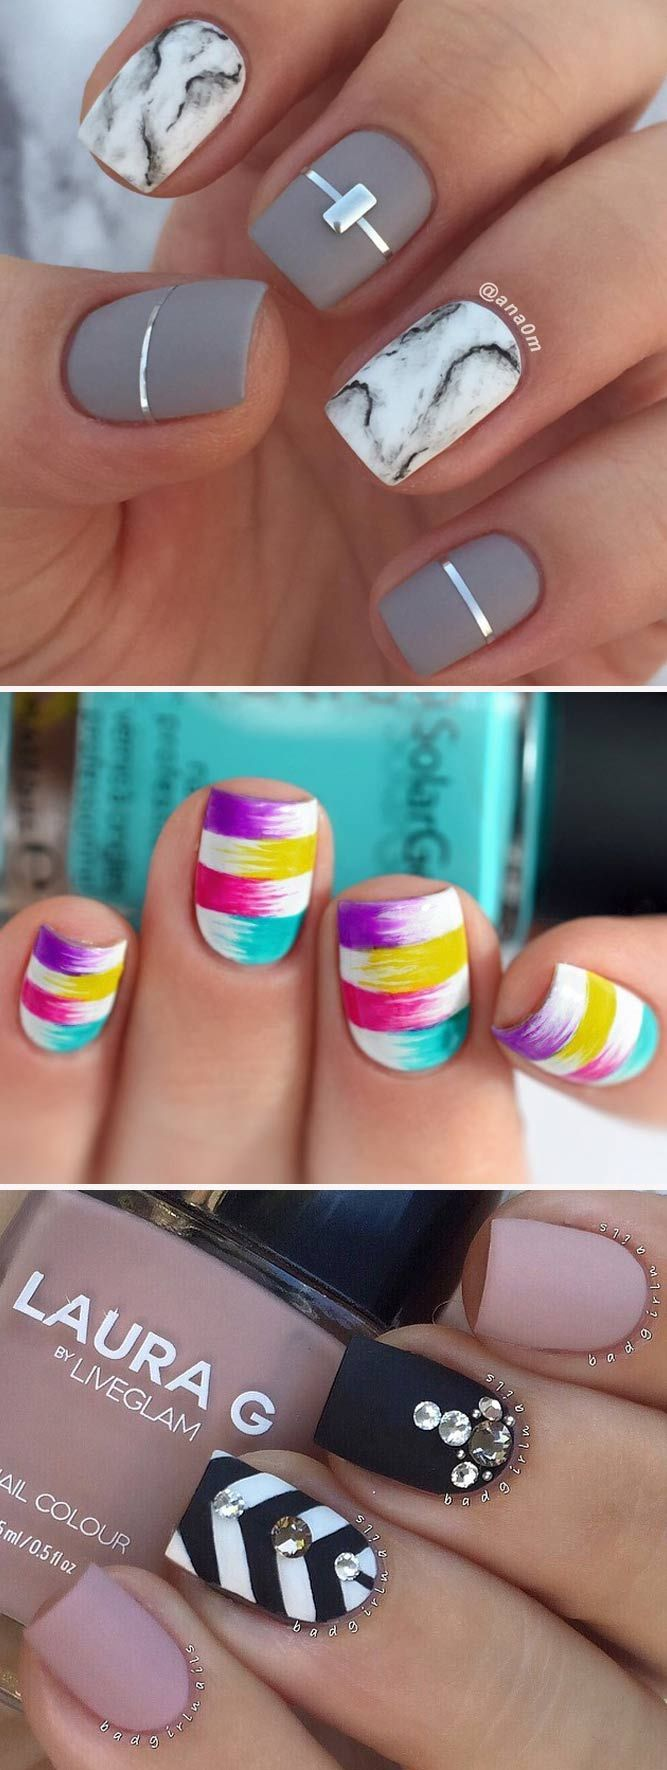 42 pretty nail designs you'll want to copy immediately | pretty